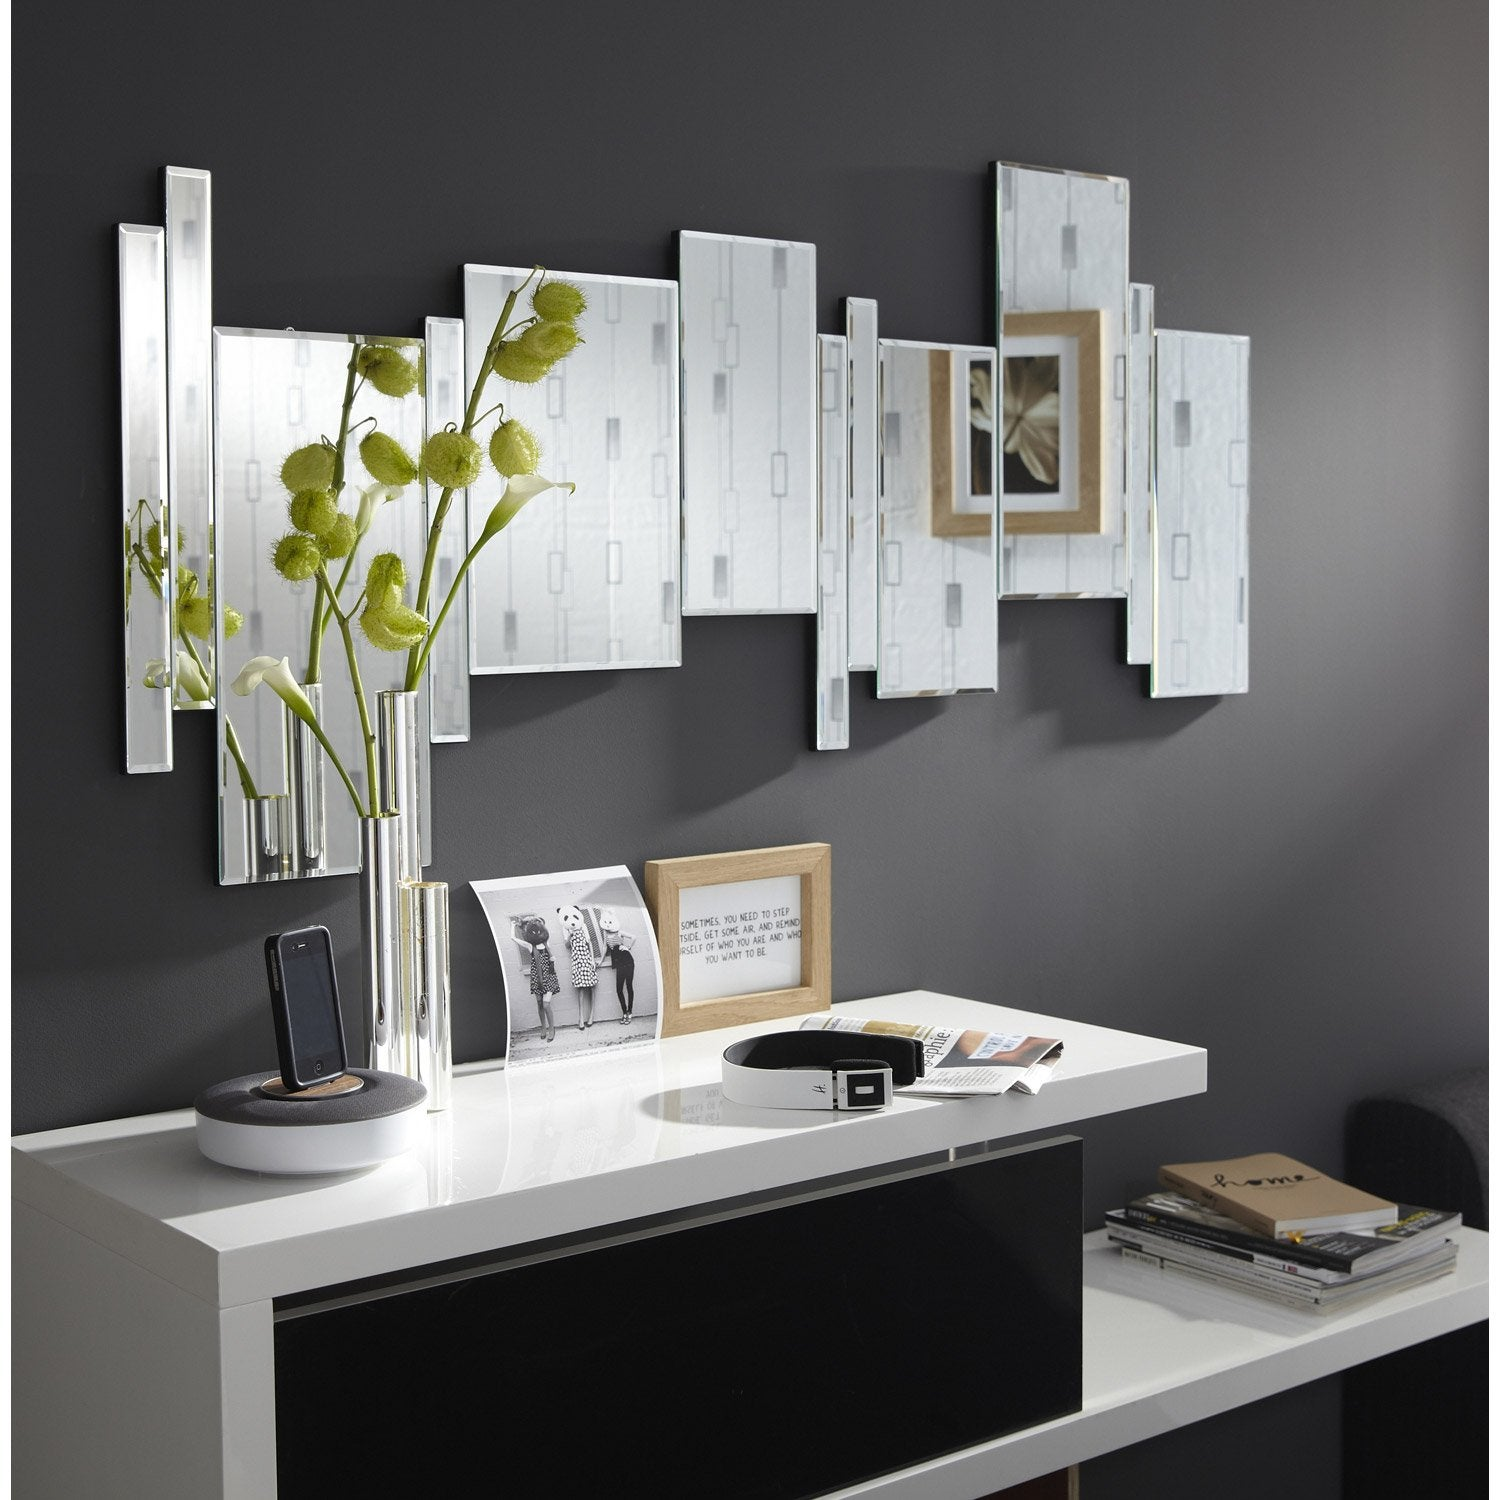 Miroir axel x cm leroy merlin - Leroy merlin mirroir ...